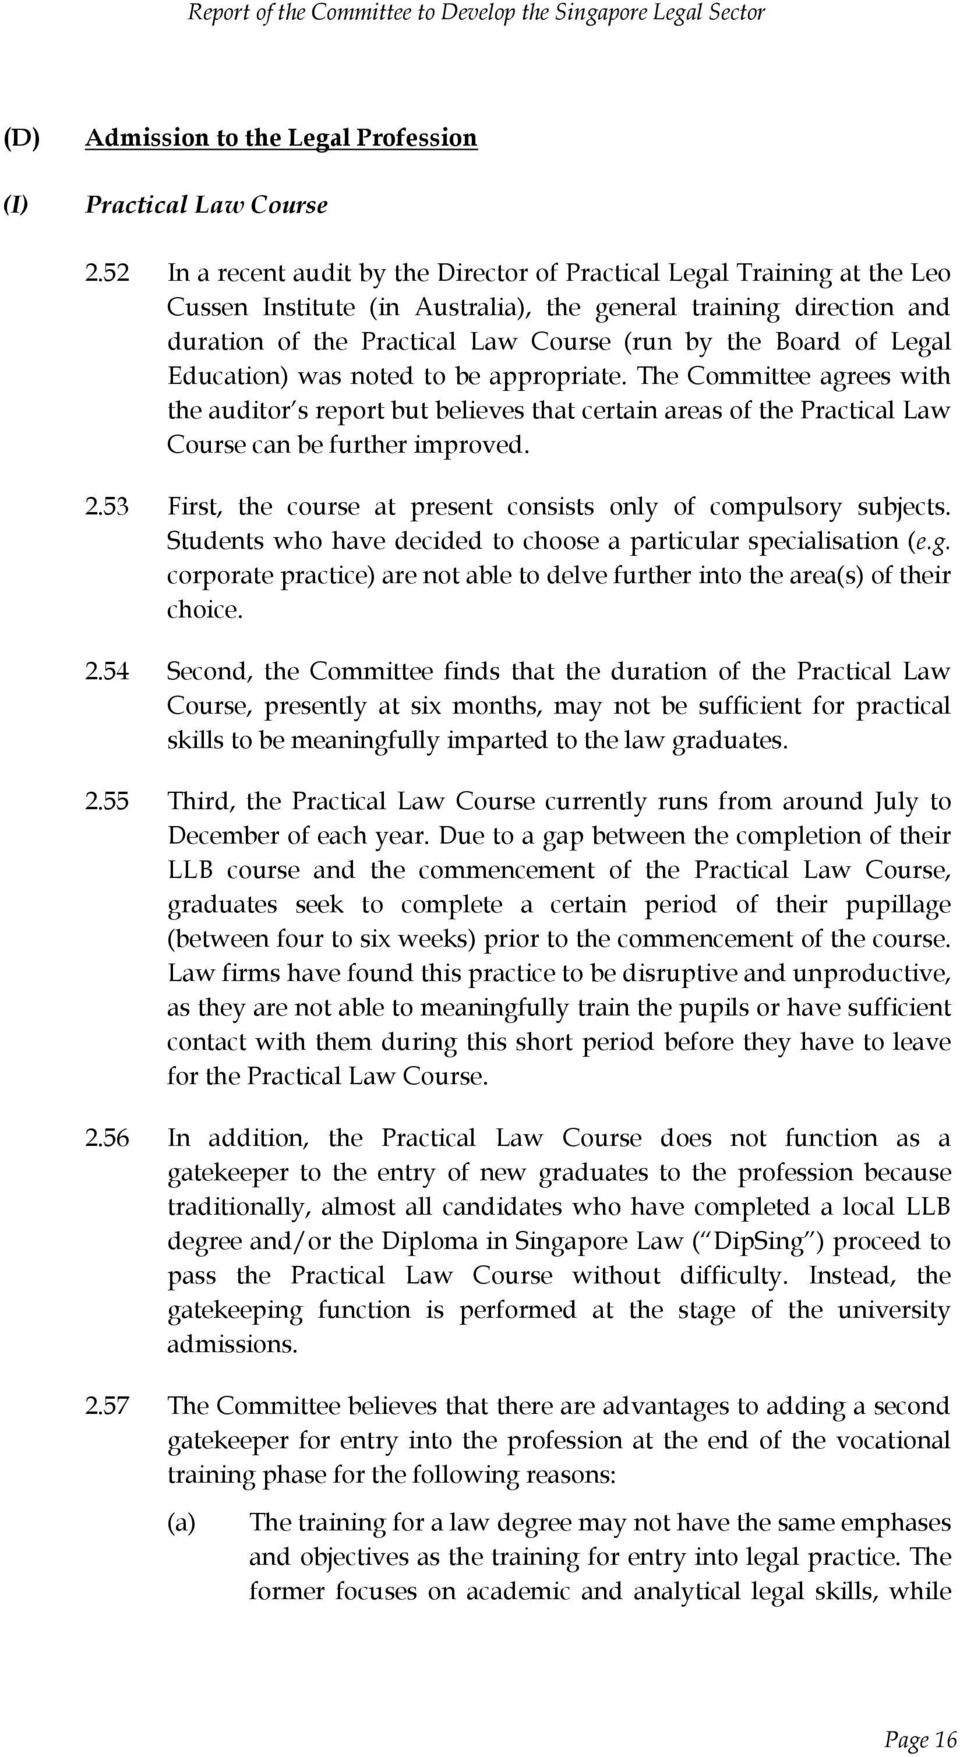 of Legal Education) was noted to be appropriate. The Committee agrees with the auditor s report but believes that certain areas of the Practical Law Course can be further improved. 2.